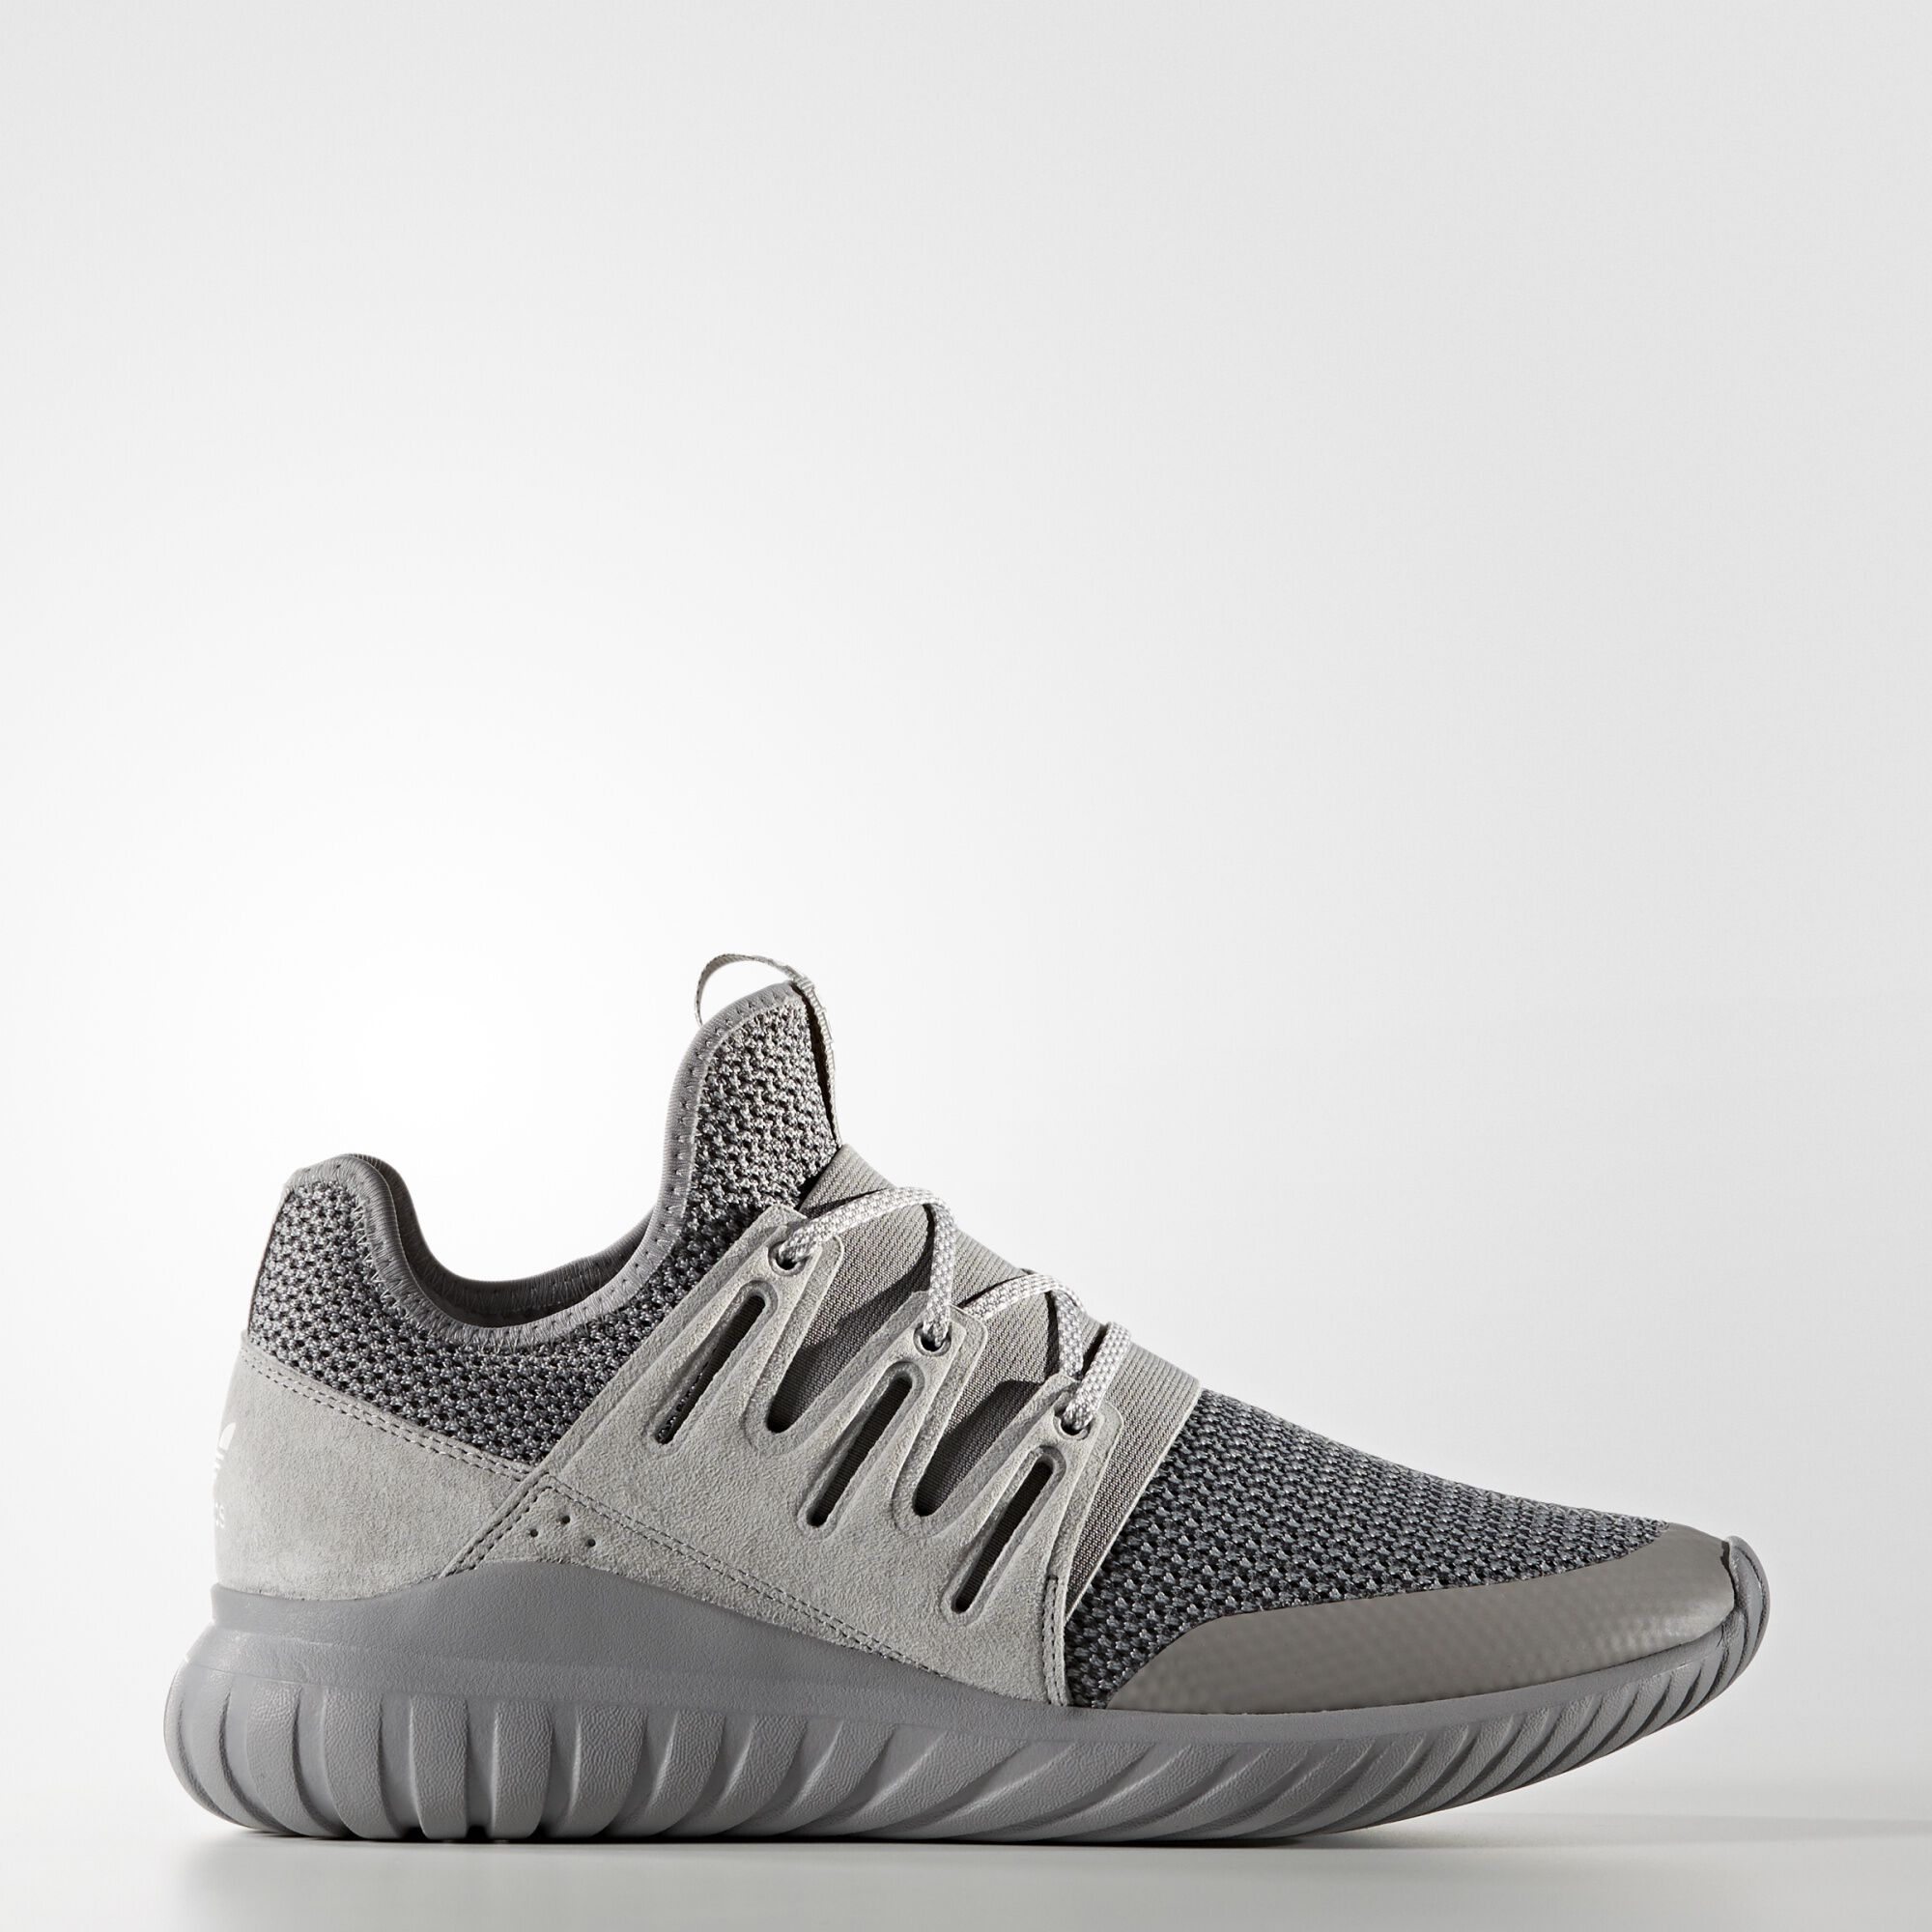 Adidas Tubular Original Mens